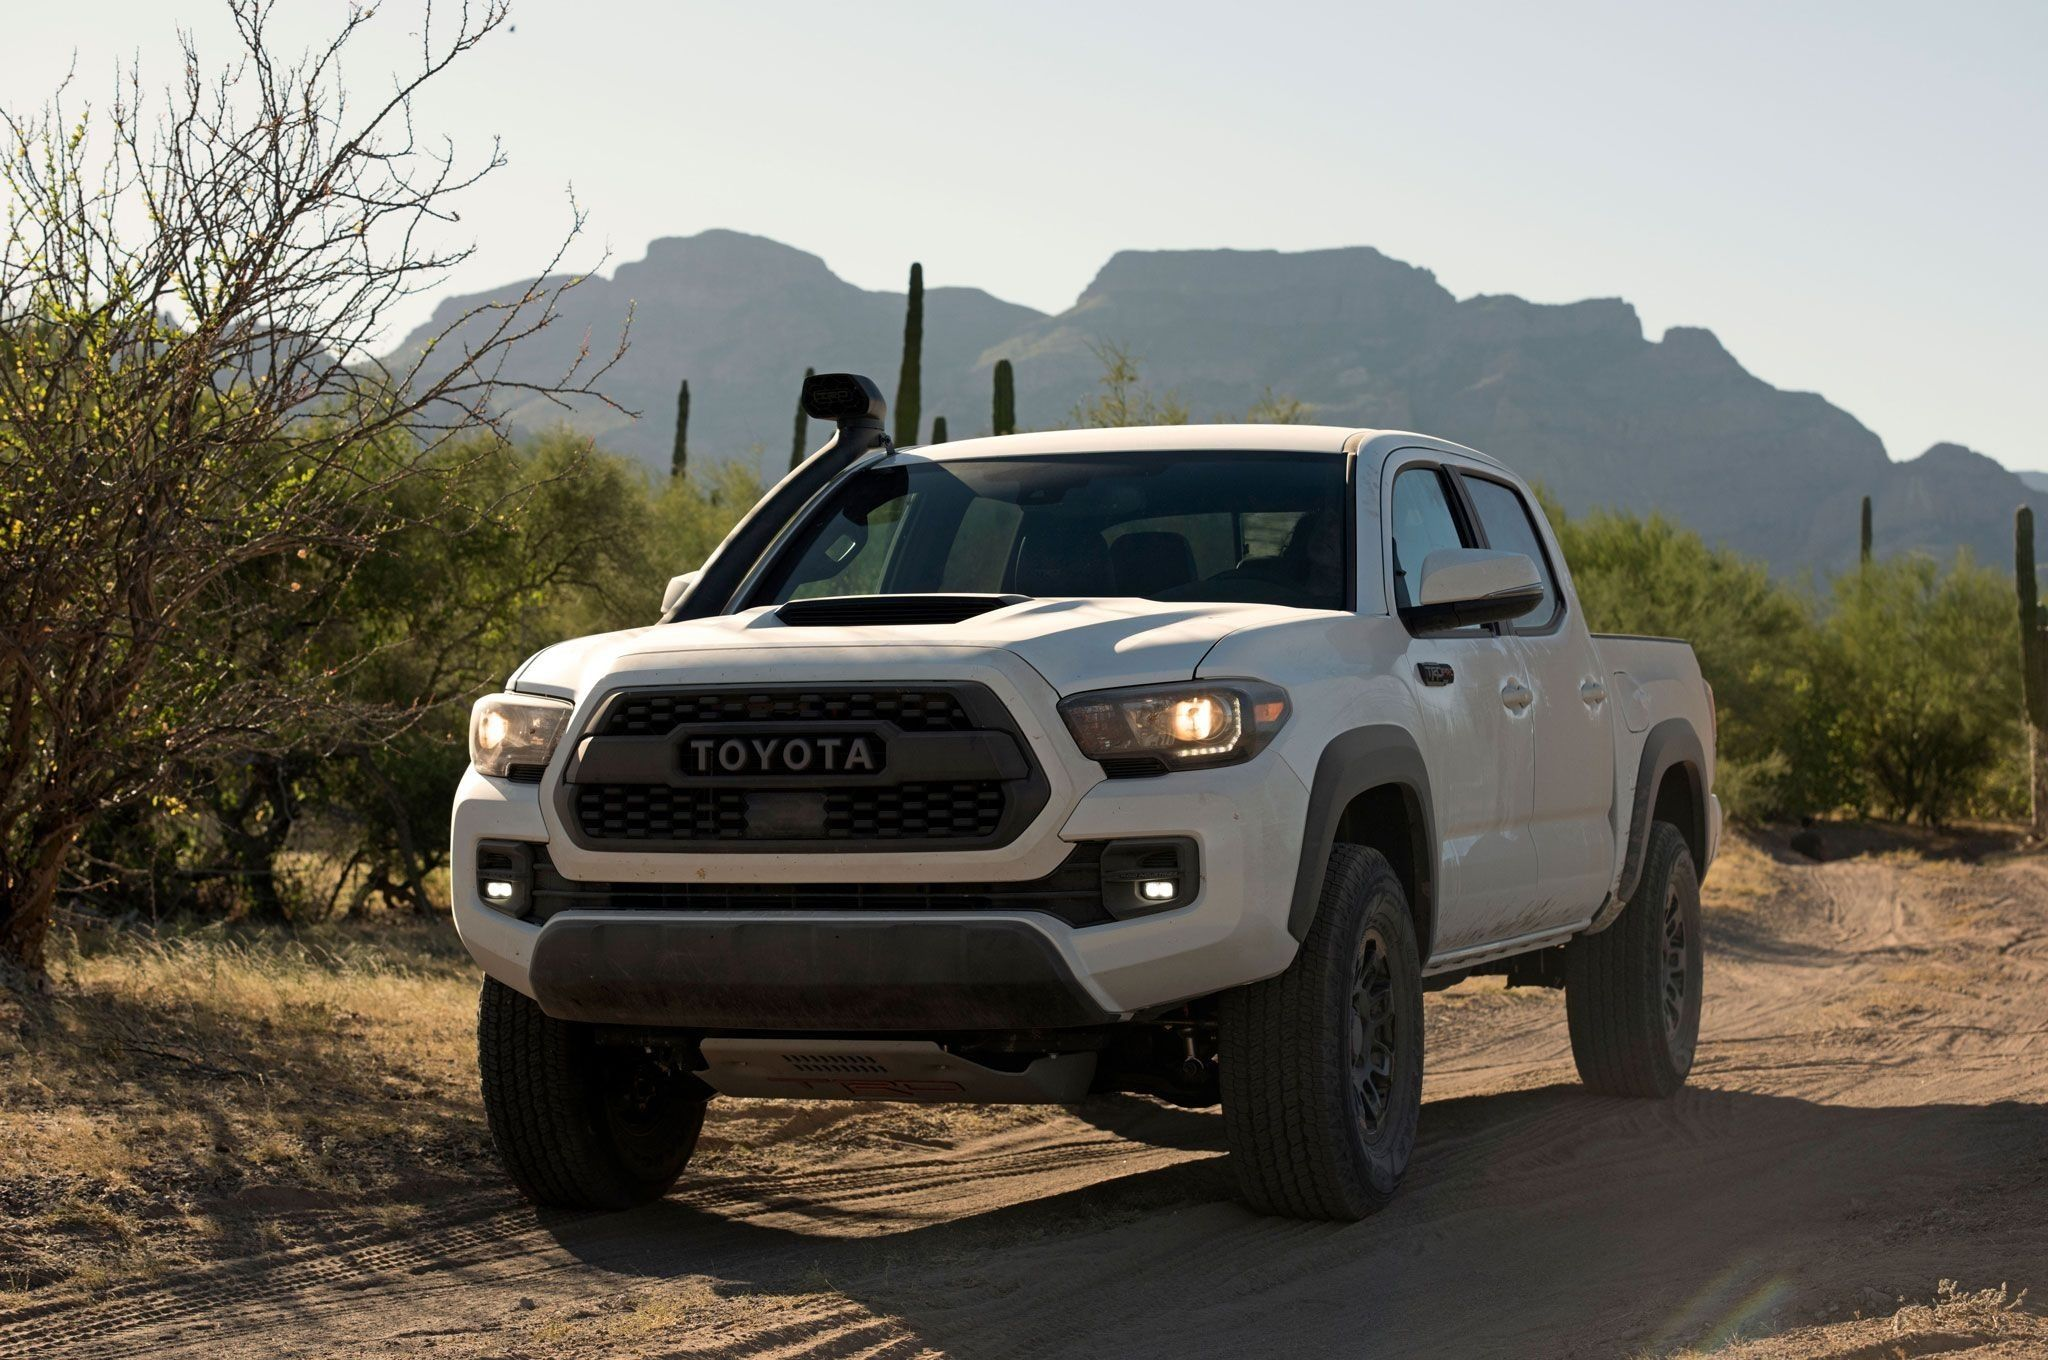 2019 Toyota Tacoma Diesel >> 2019 Toyota Tacoma Diesel Exterior And Interior Review Car